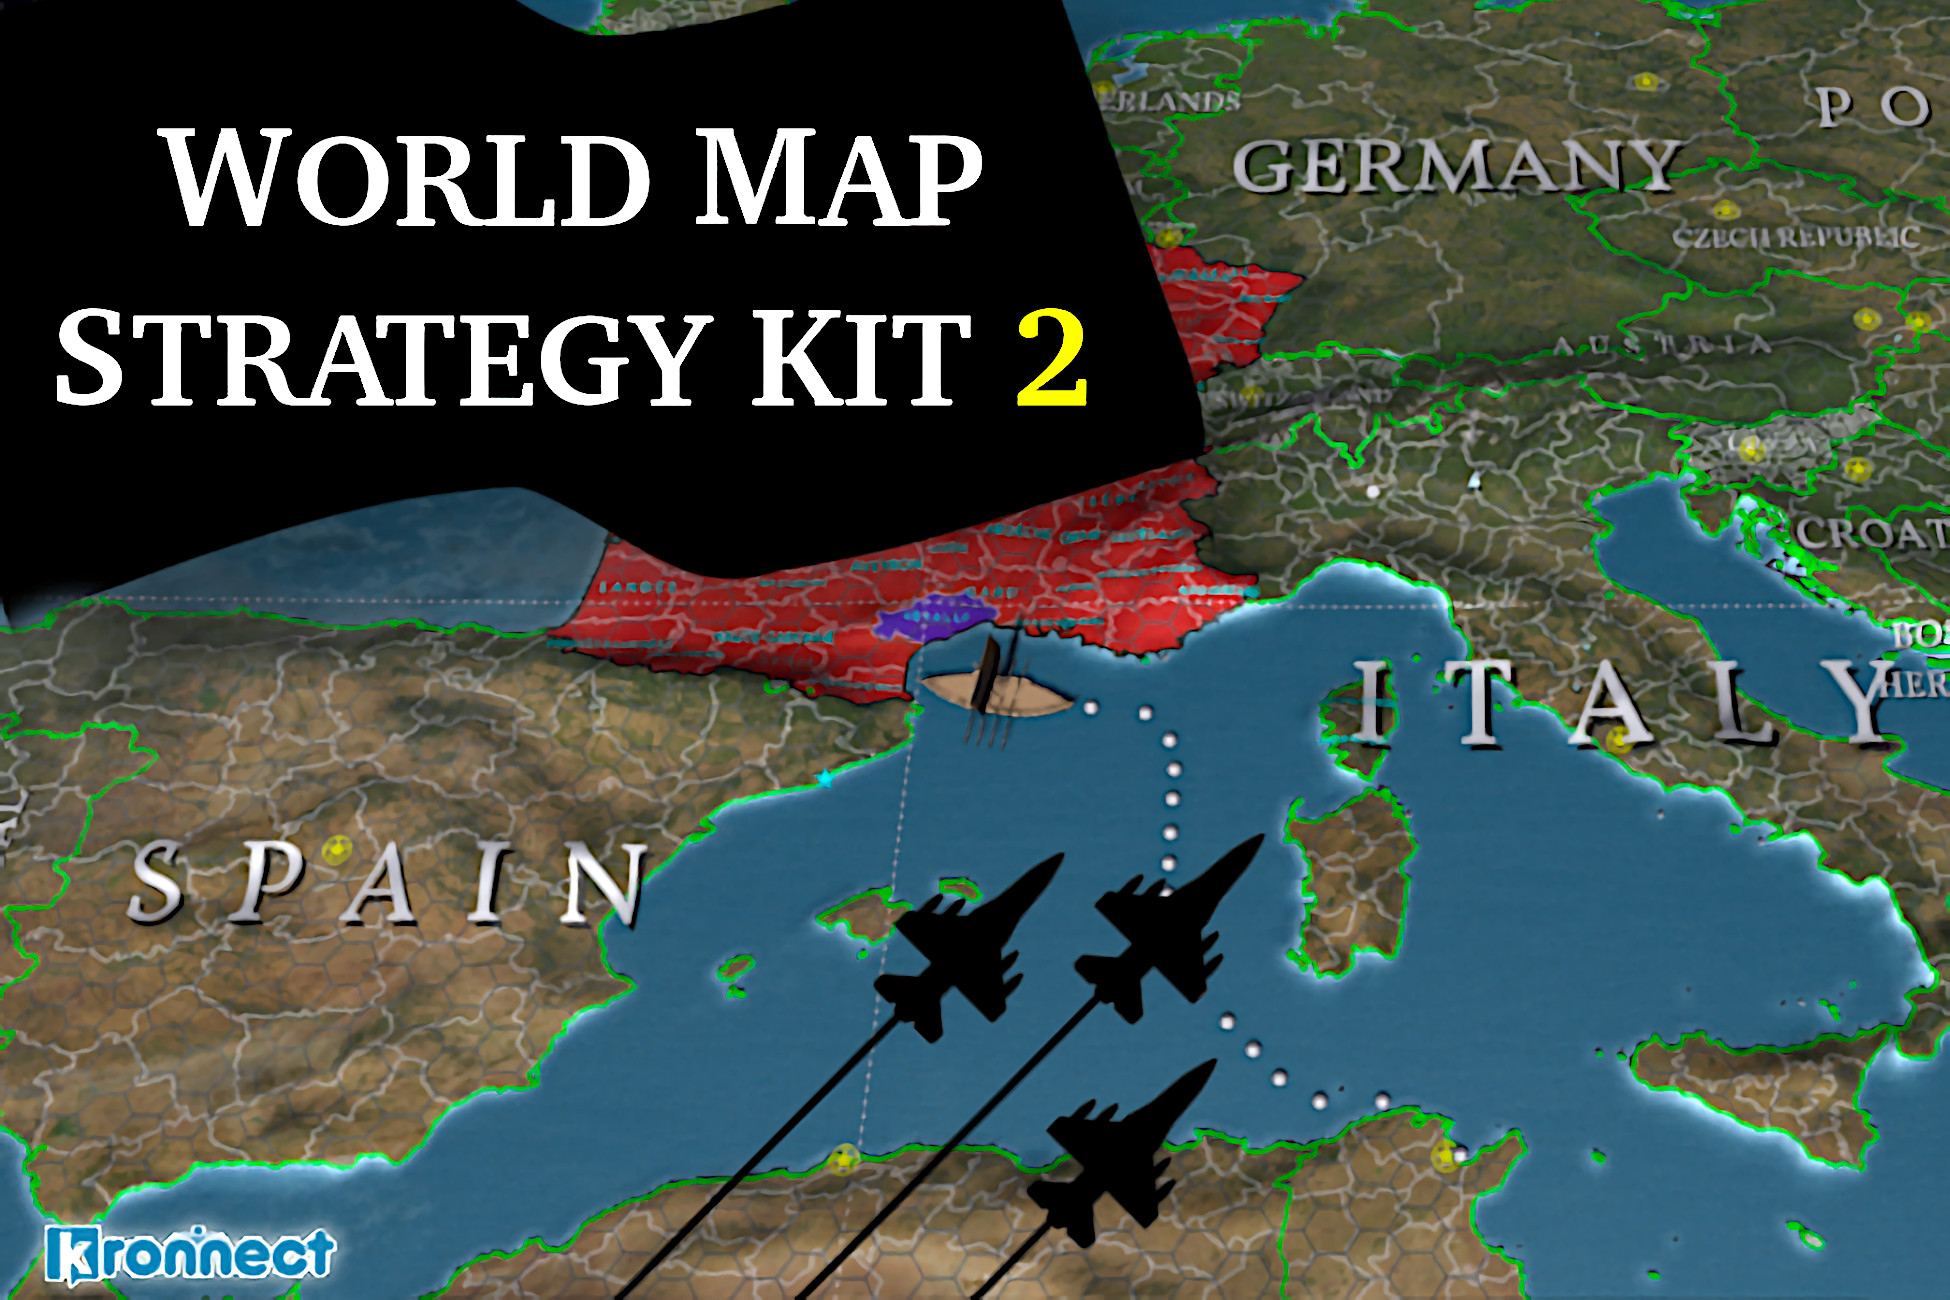 World Map Strategy Kit 2